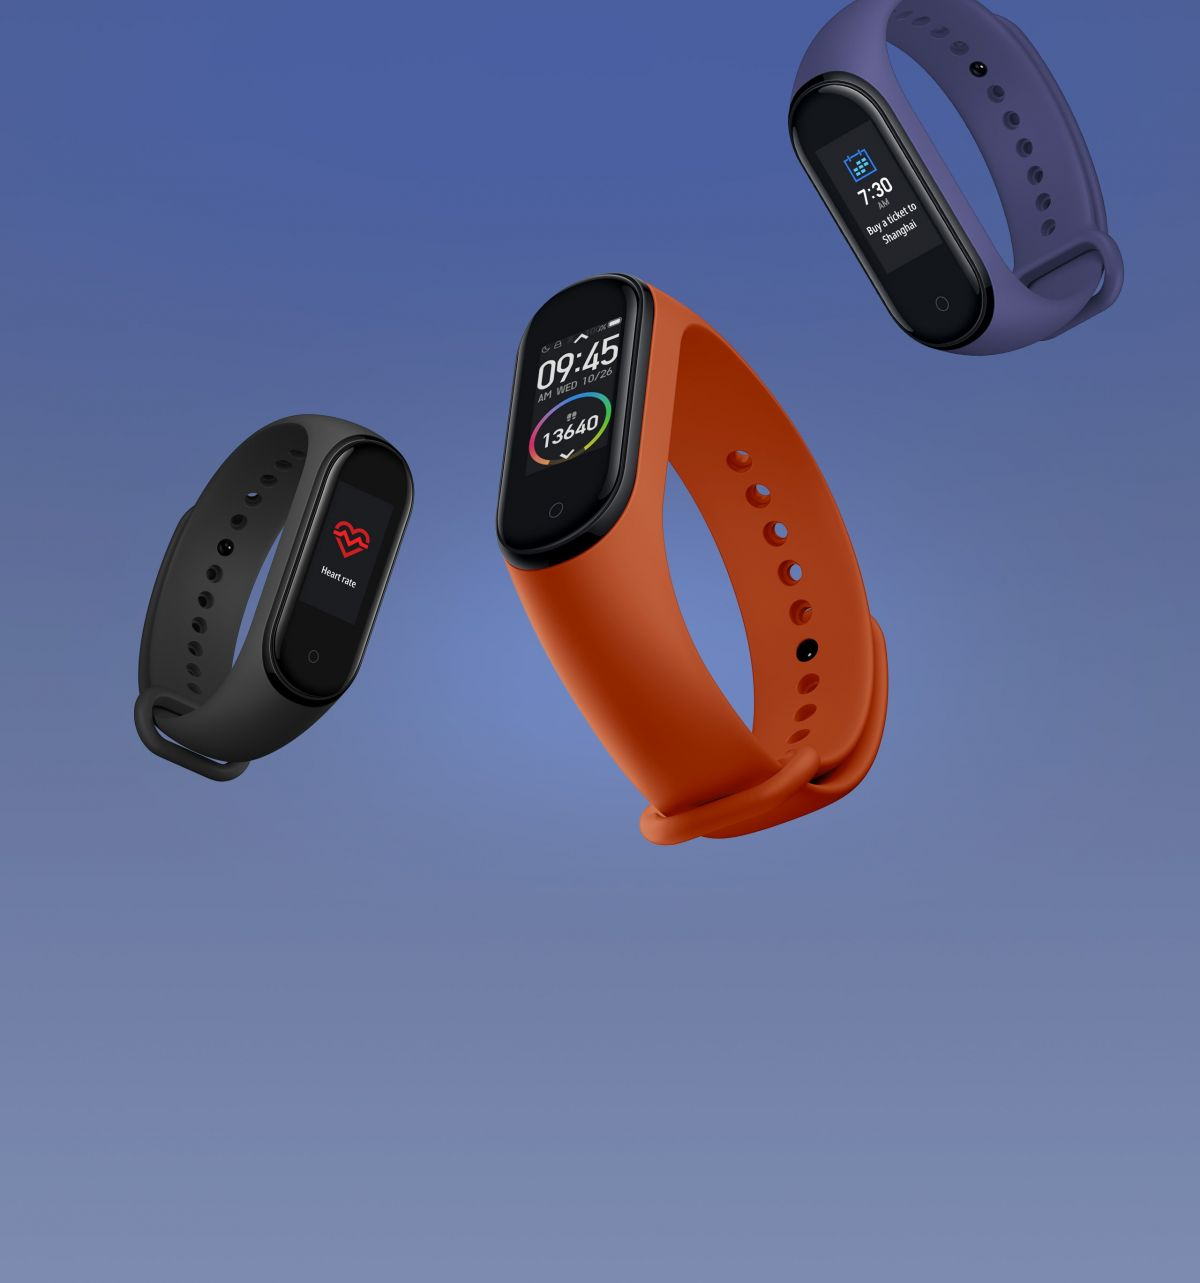 Mi Band 4 shows brilliant sales performance, these much units have been sold